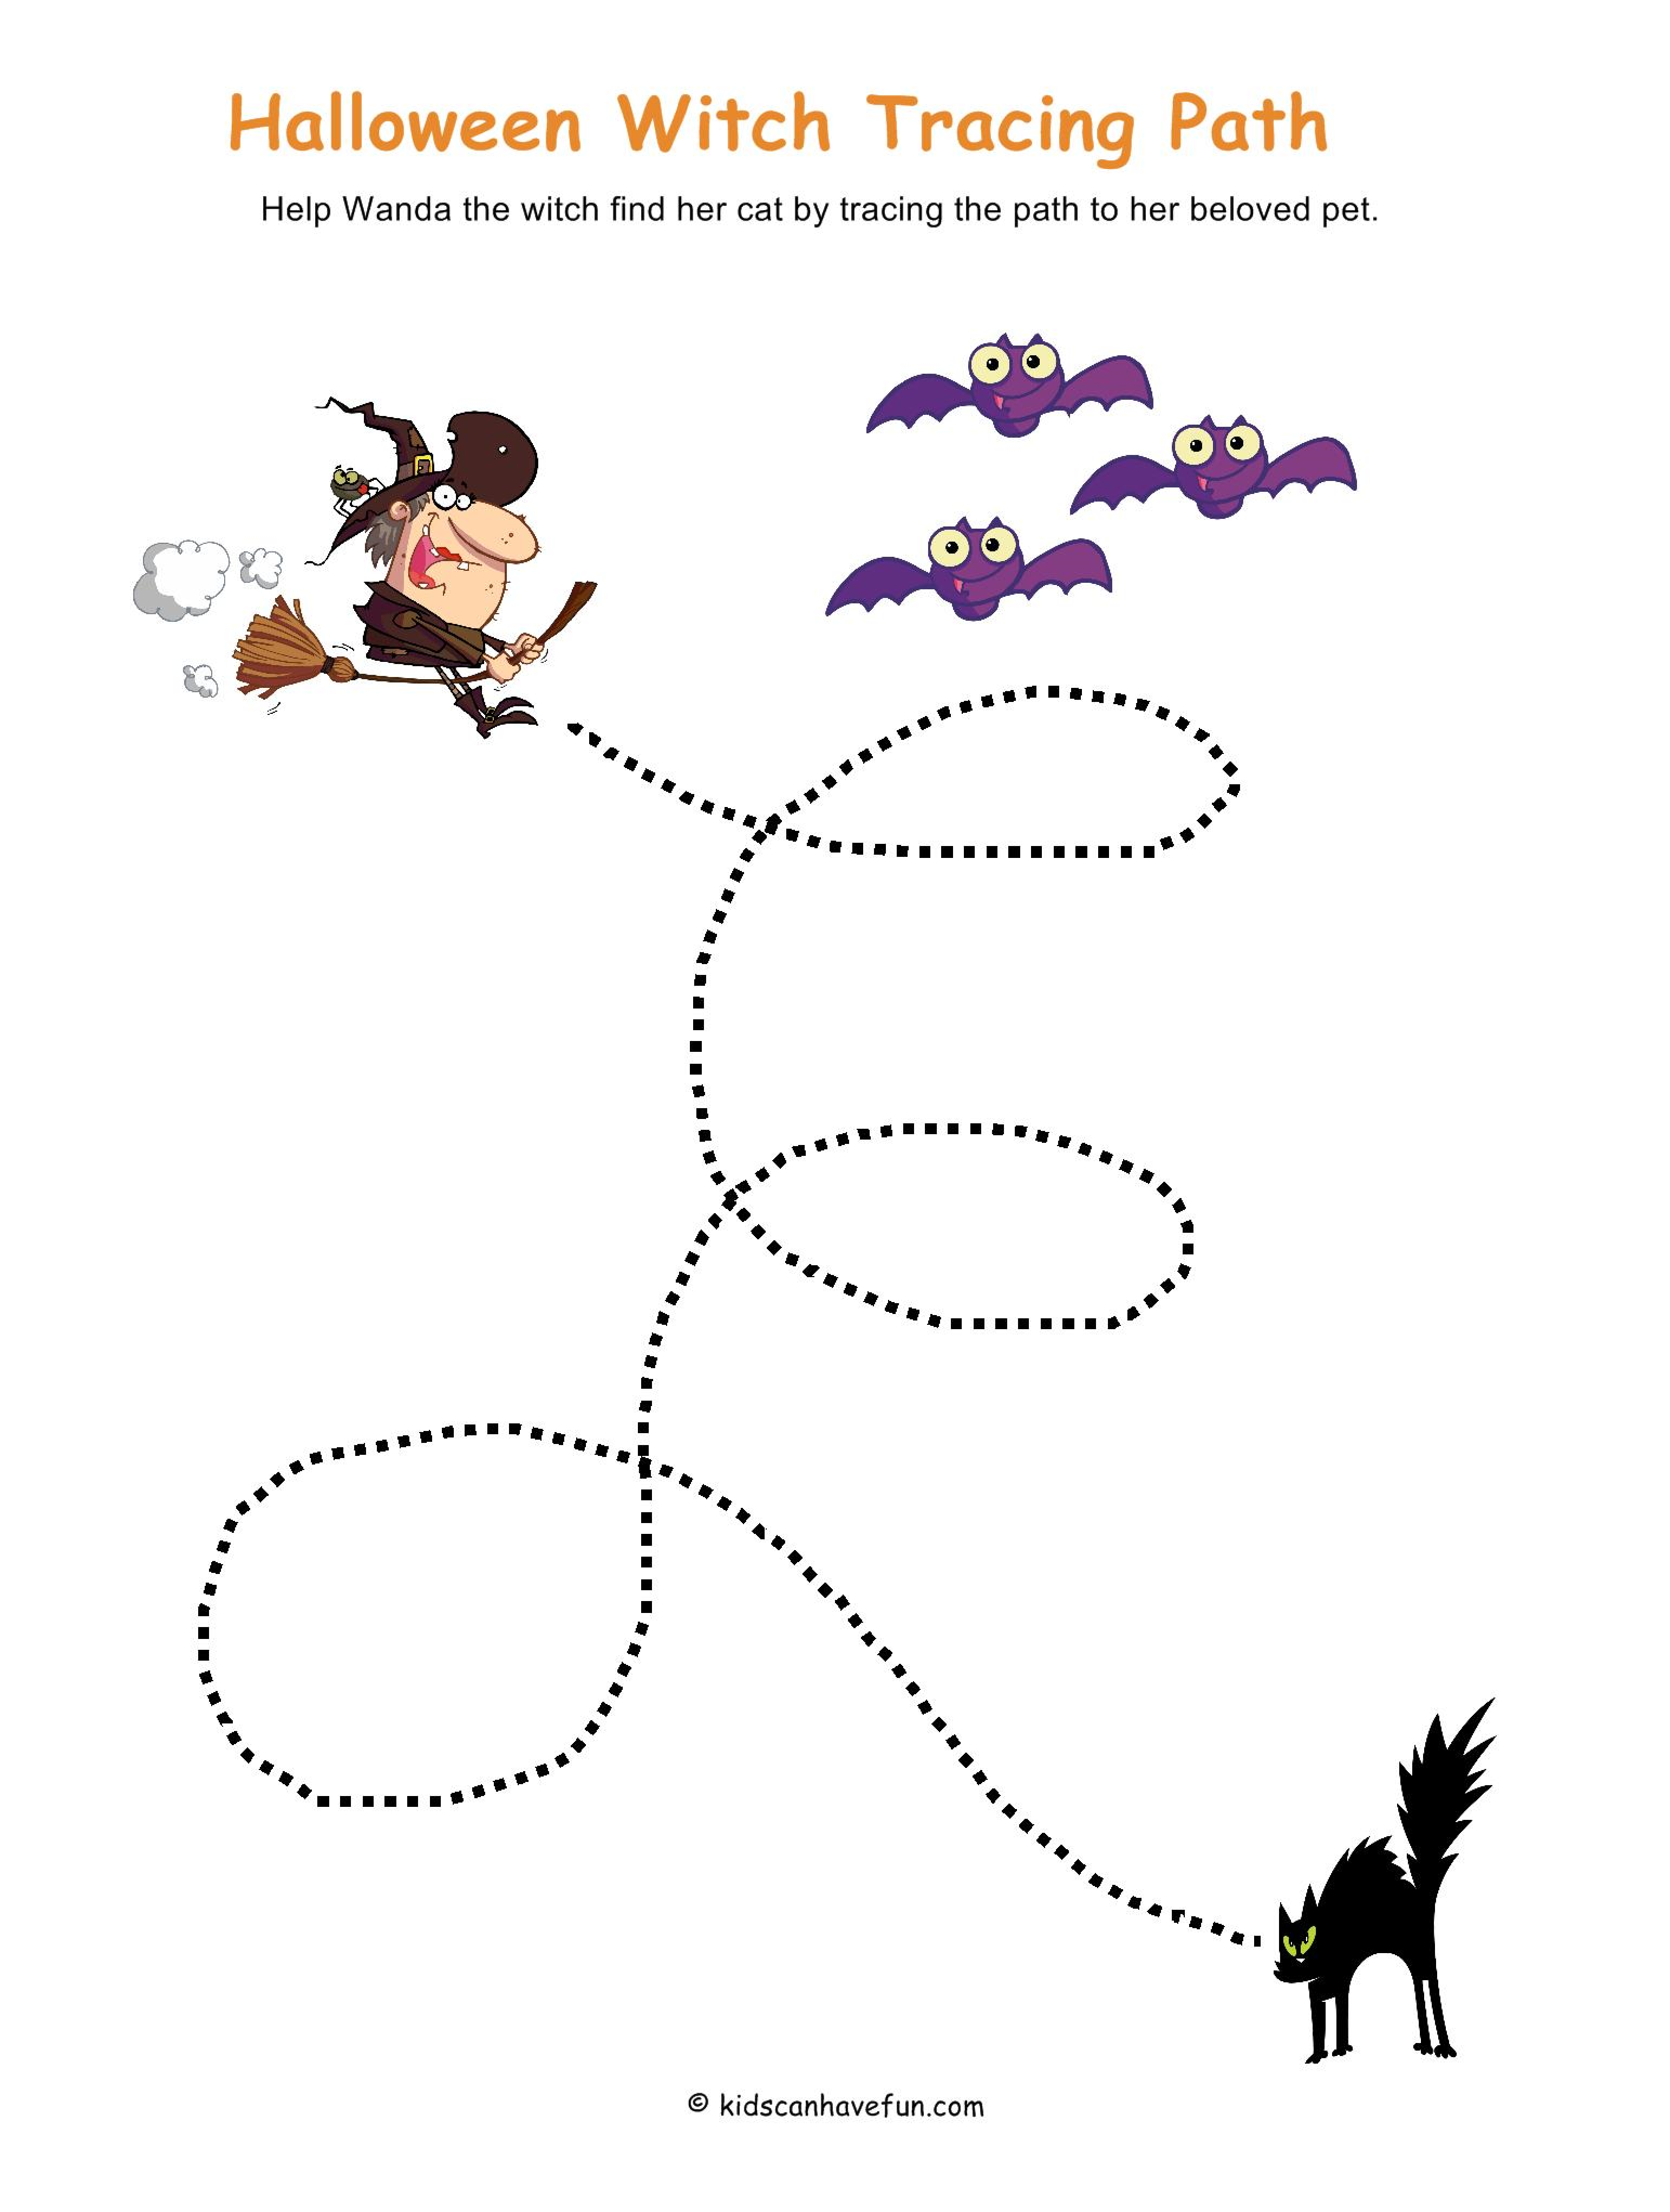 Halloween Witch Tracing Path Activity